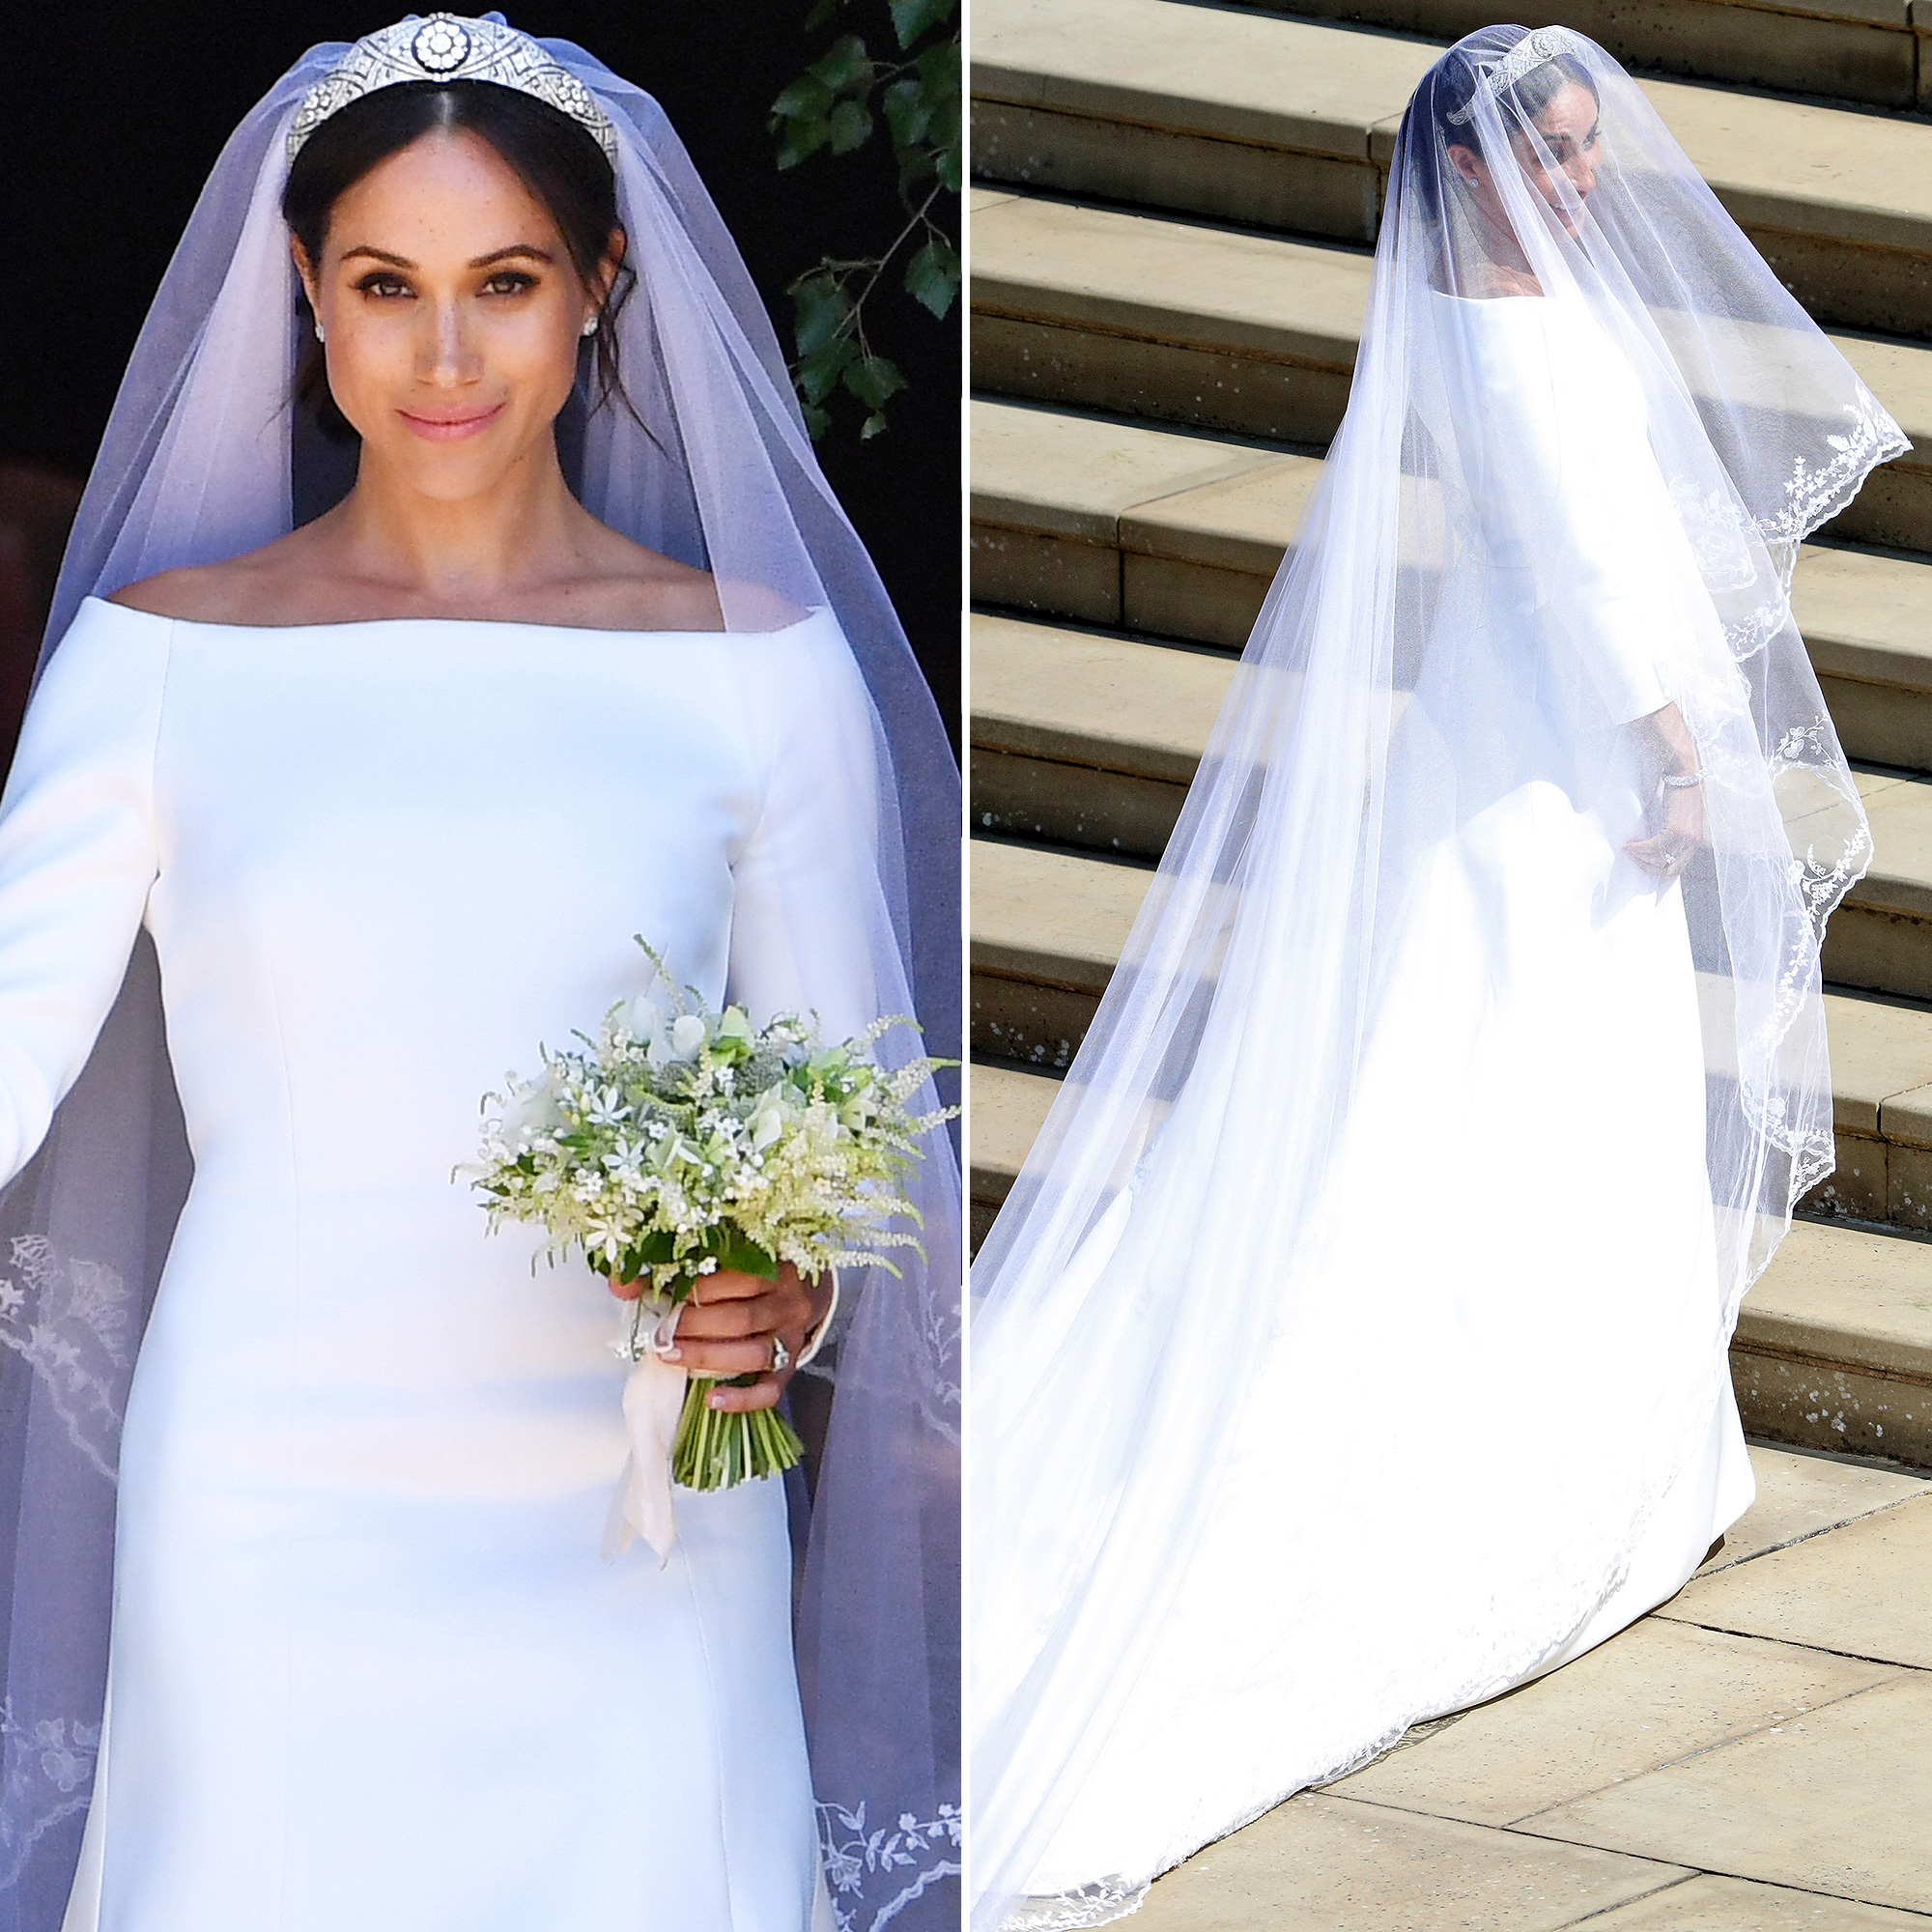 Most Popular Bridesmaid Dress: The Most Amazing Royal Wedding Dresses Ever